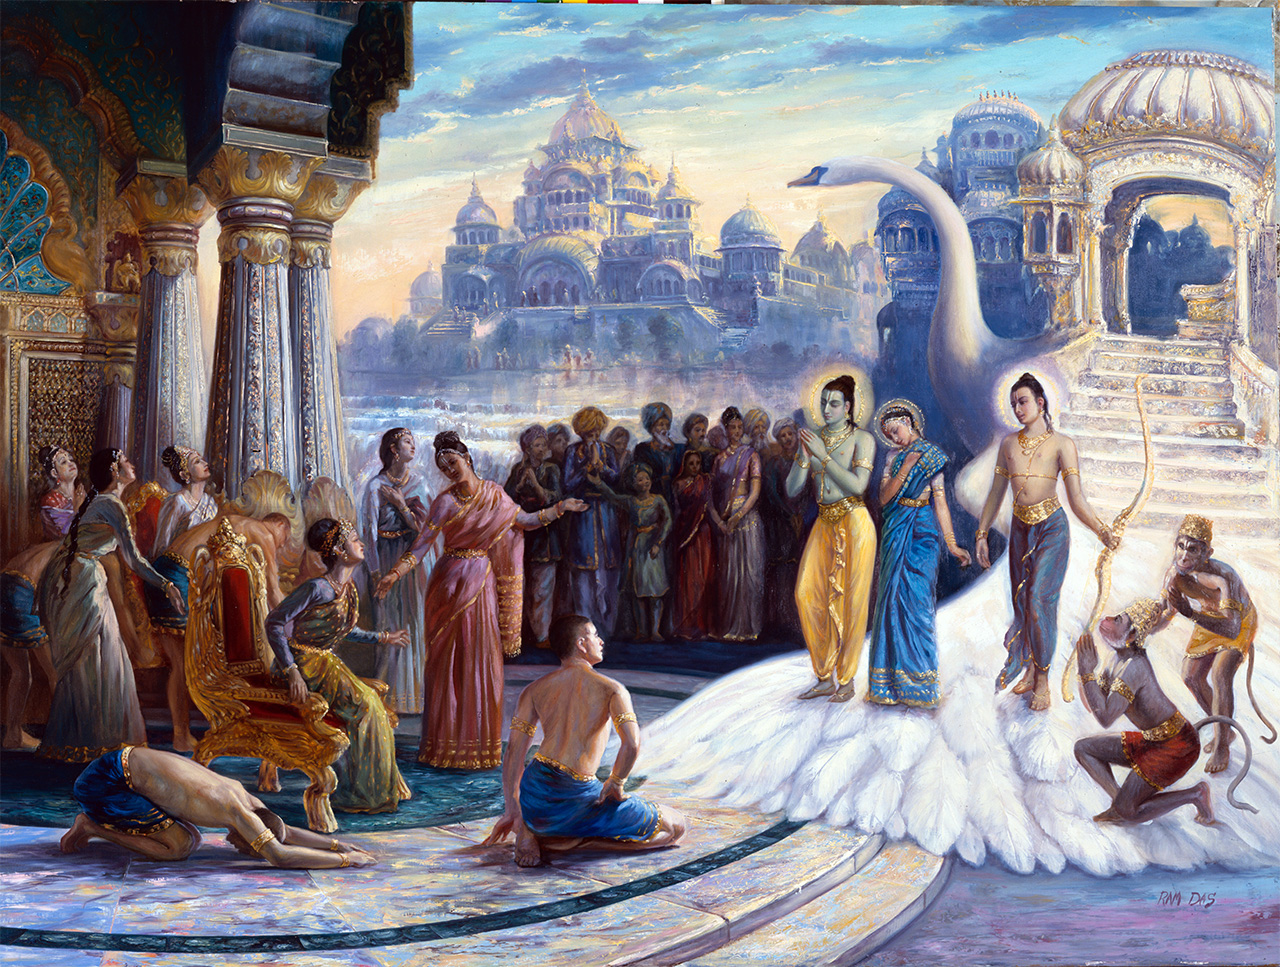 Untold Stories of the Ramayana